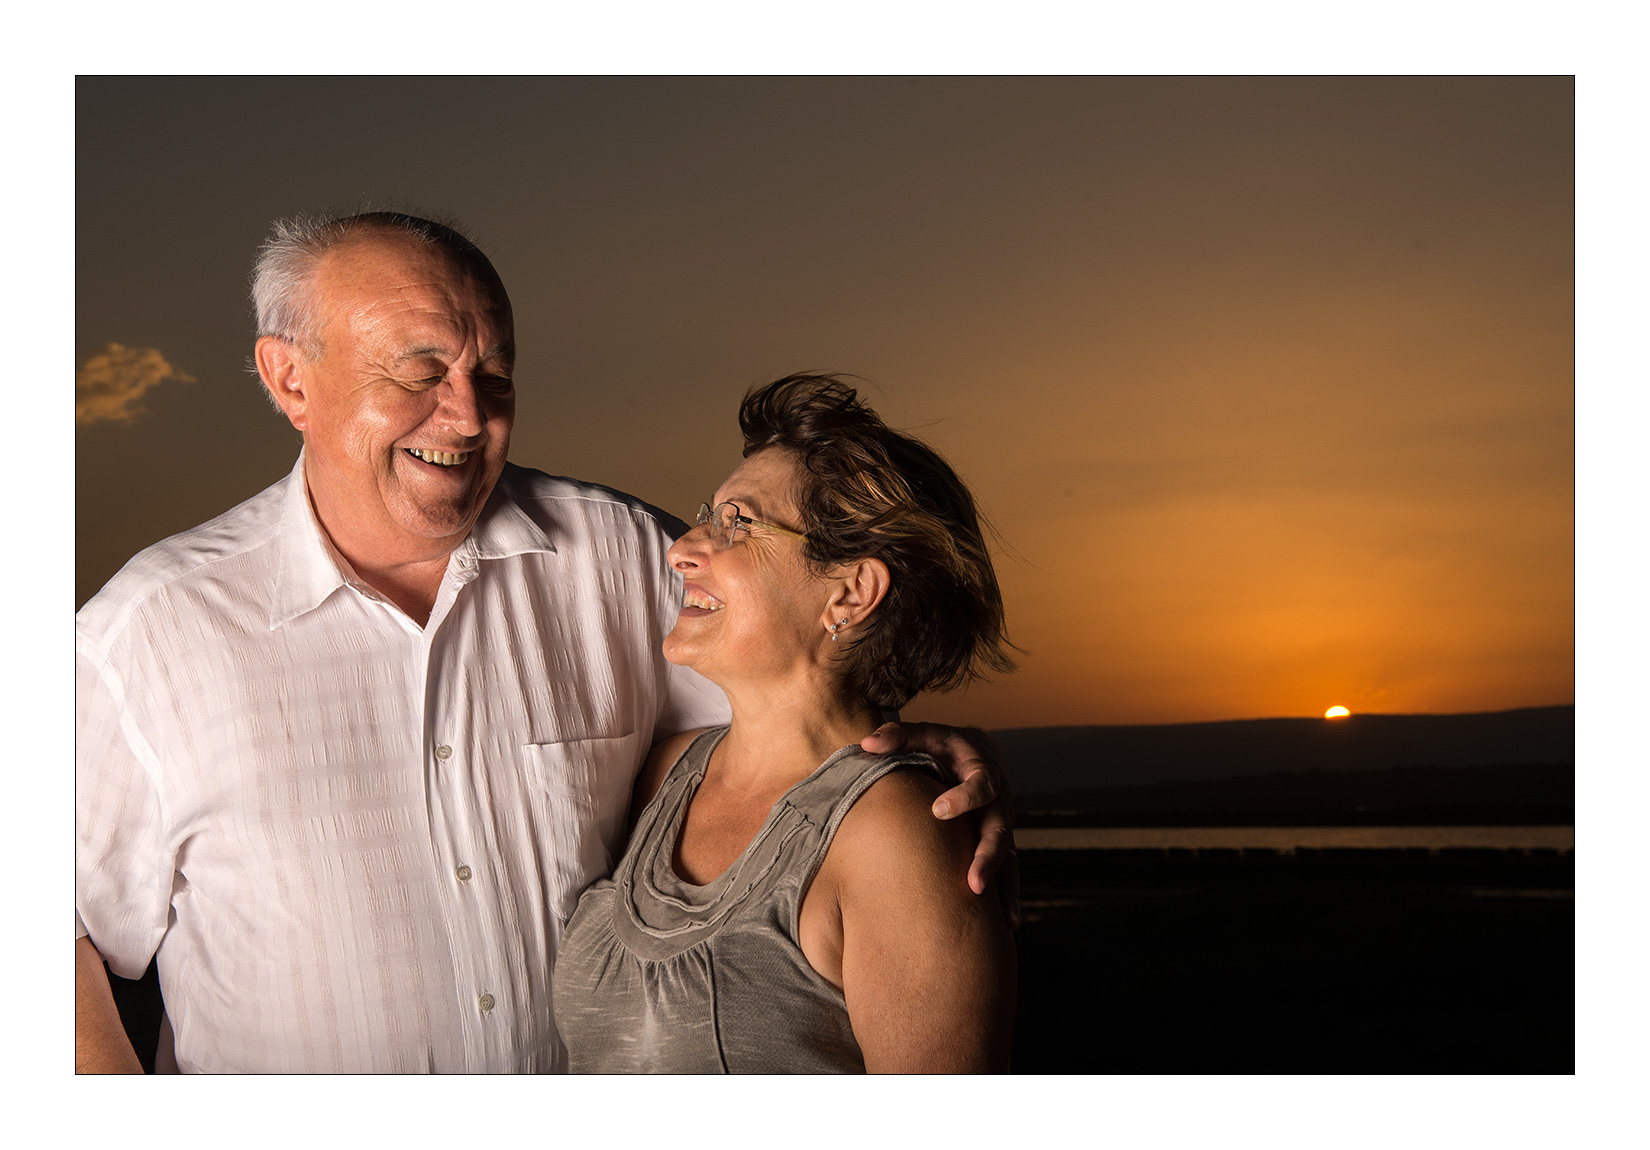 couple-grand-parent-coucher-soleil-amour-generation-photo-montpellier